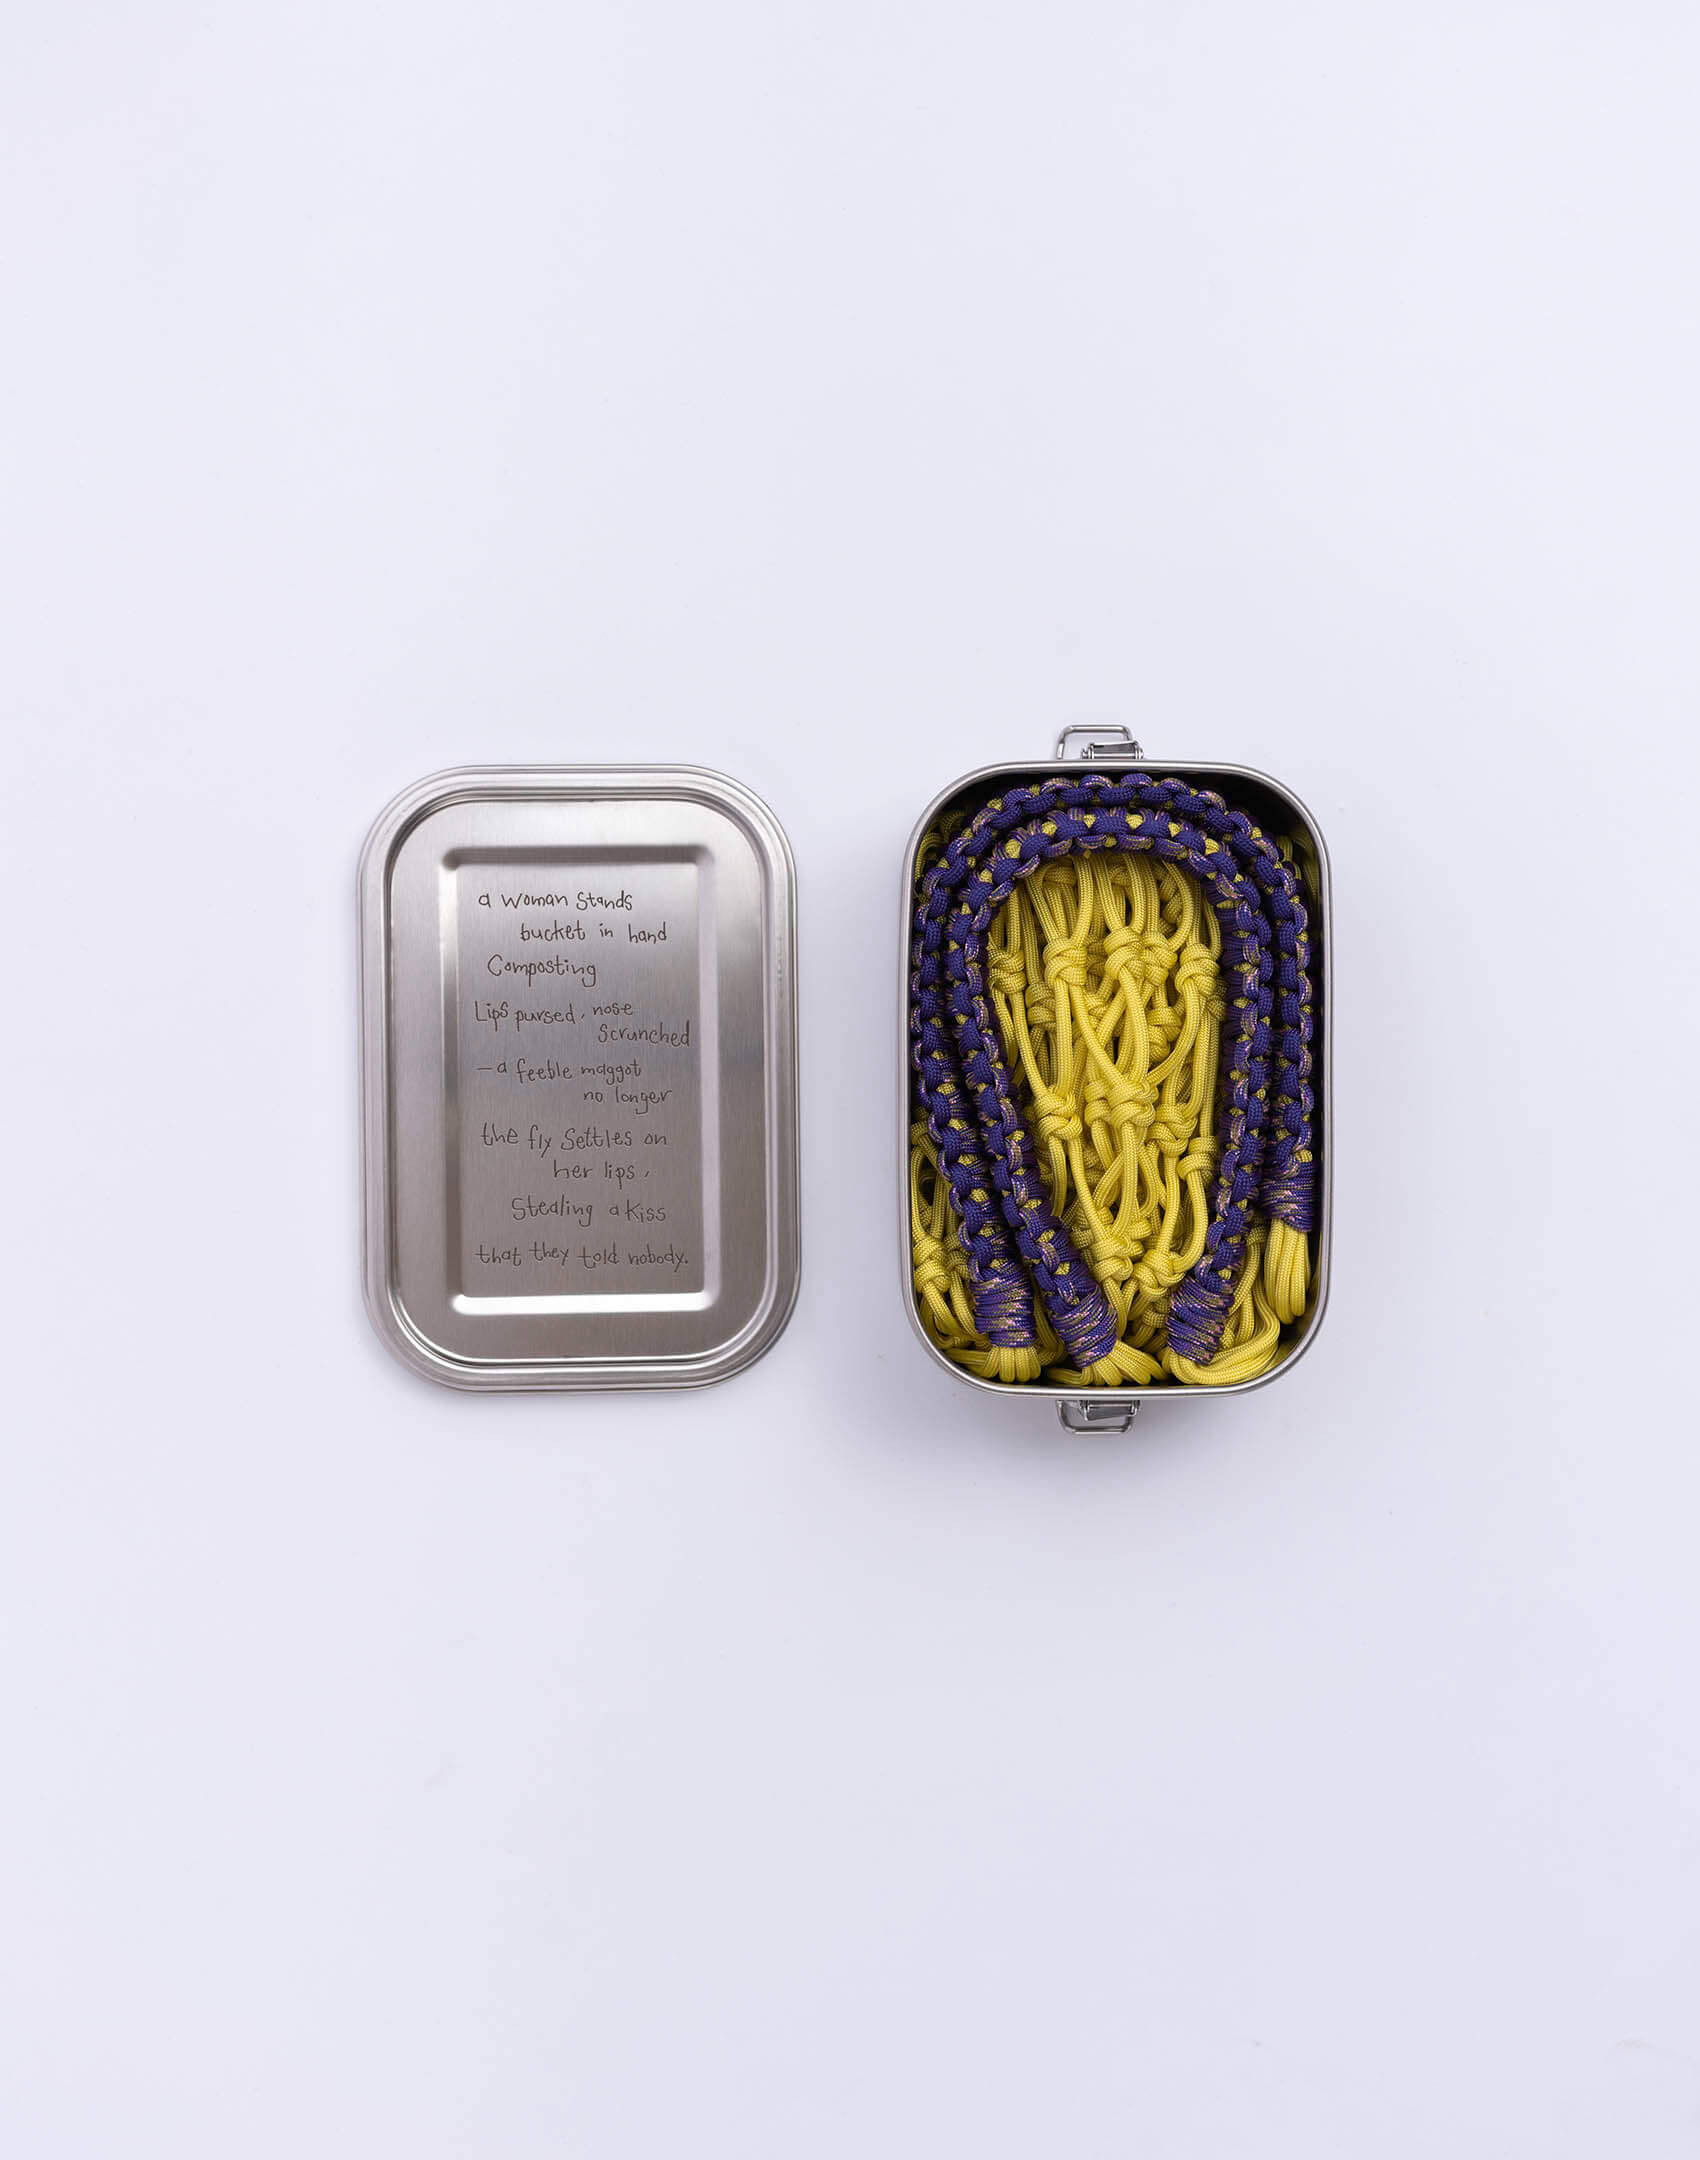 P.S. Field Bag 20 (Sakura), yellow/purple colorway. Stainless steel lunchbox featuring tender love poem between a woman and fly.